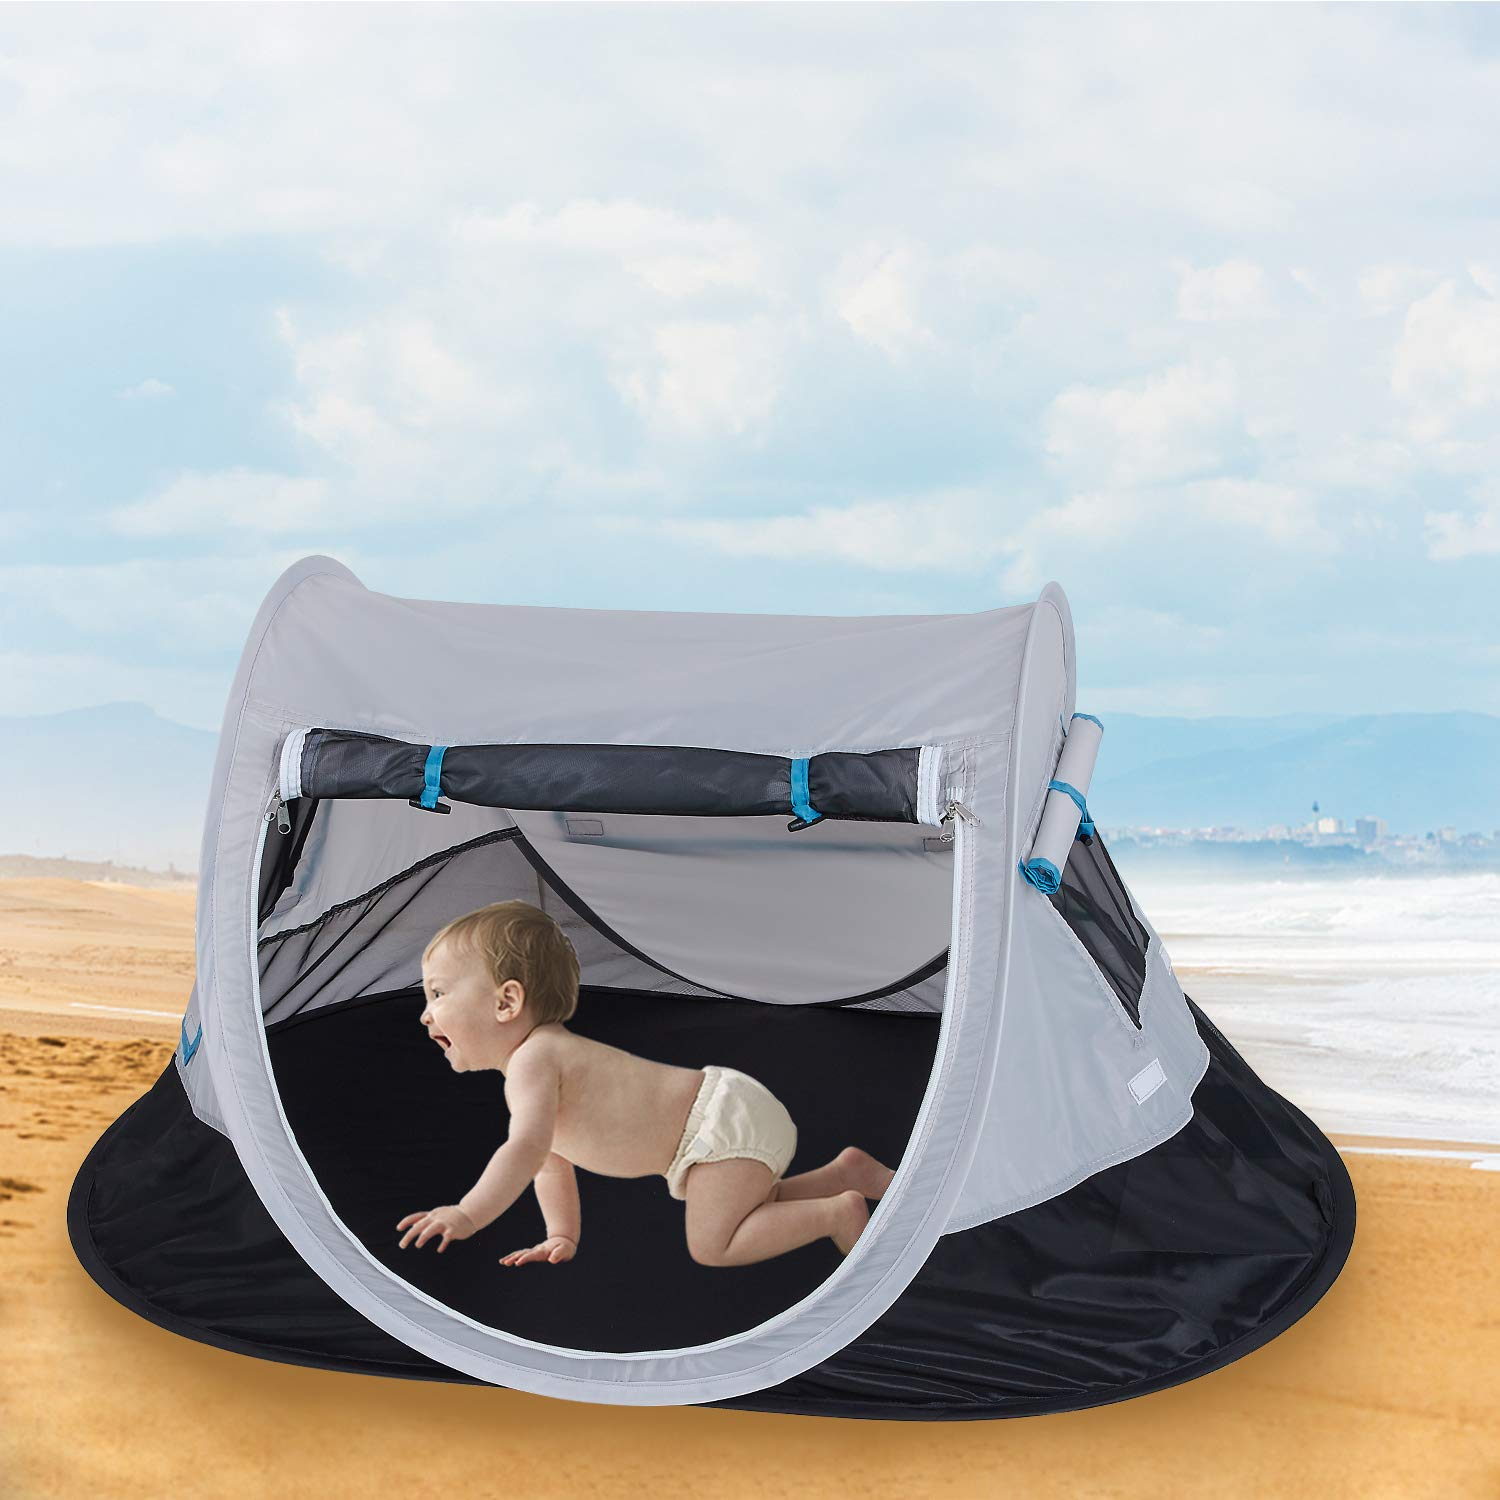 SHDIBA Portable Travel Pop up Baby Tent, Large Beach Sun Shelter Infant Tent, UPF 50+, Baby Sleep Outdoor Camping Mosquito Tent by SHDIBA (Image #4)